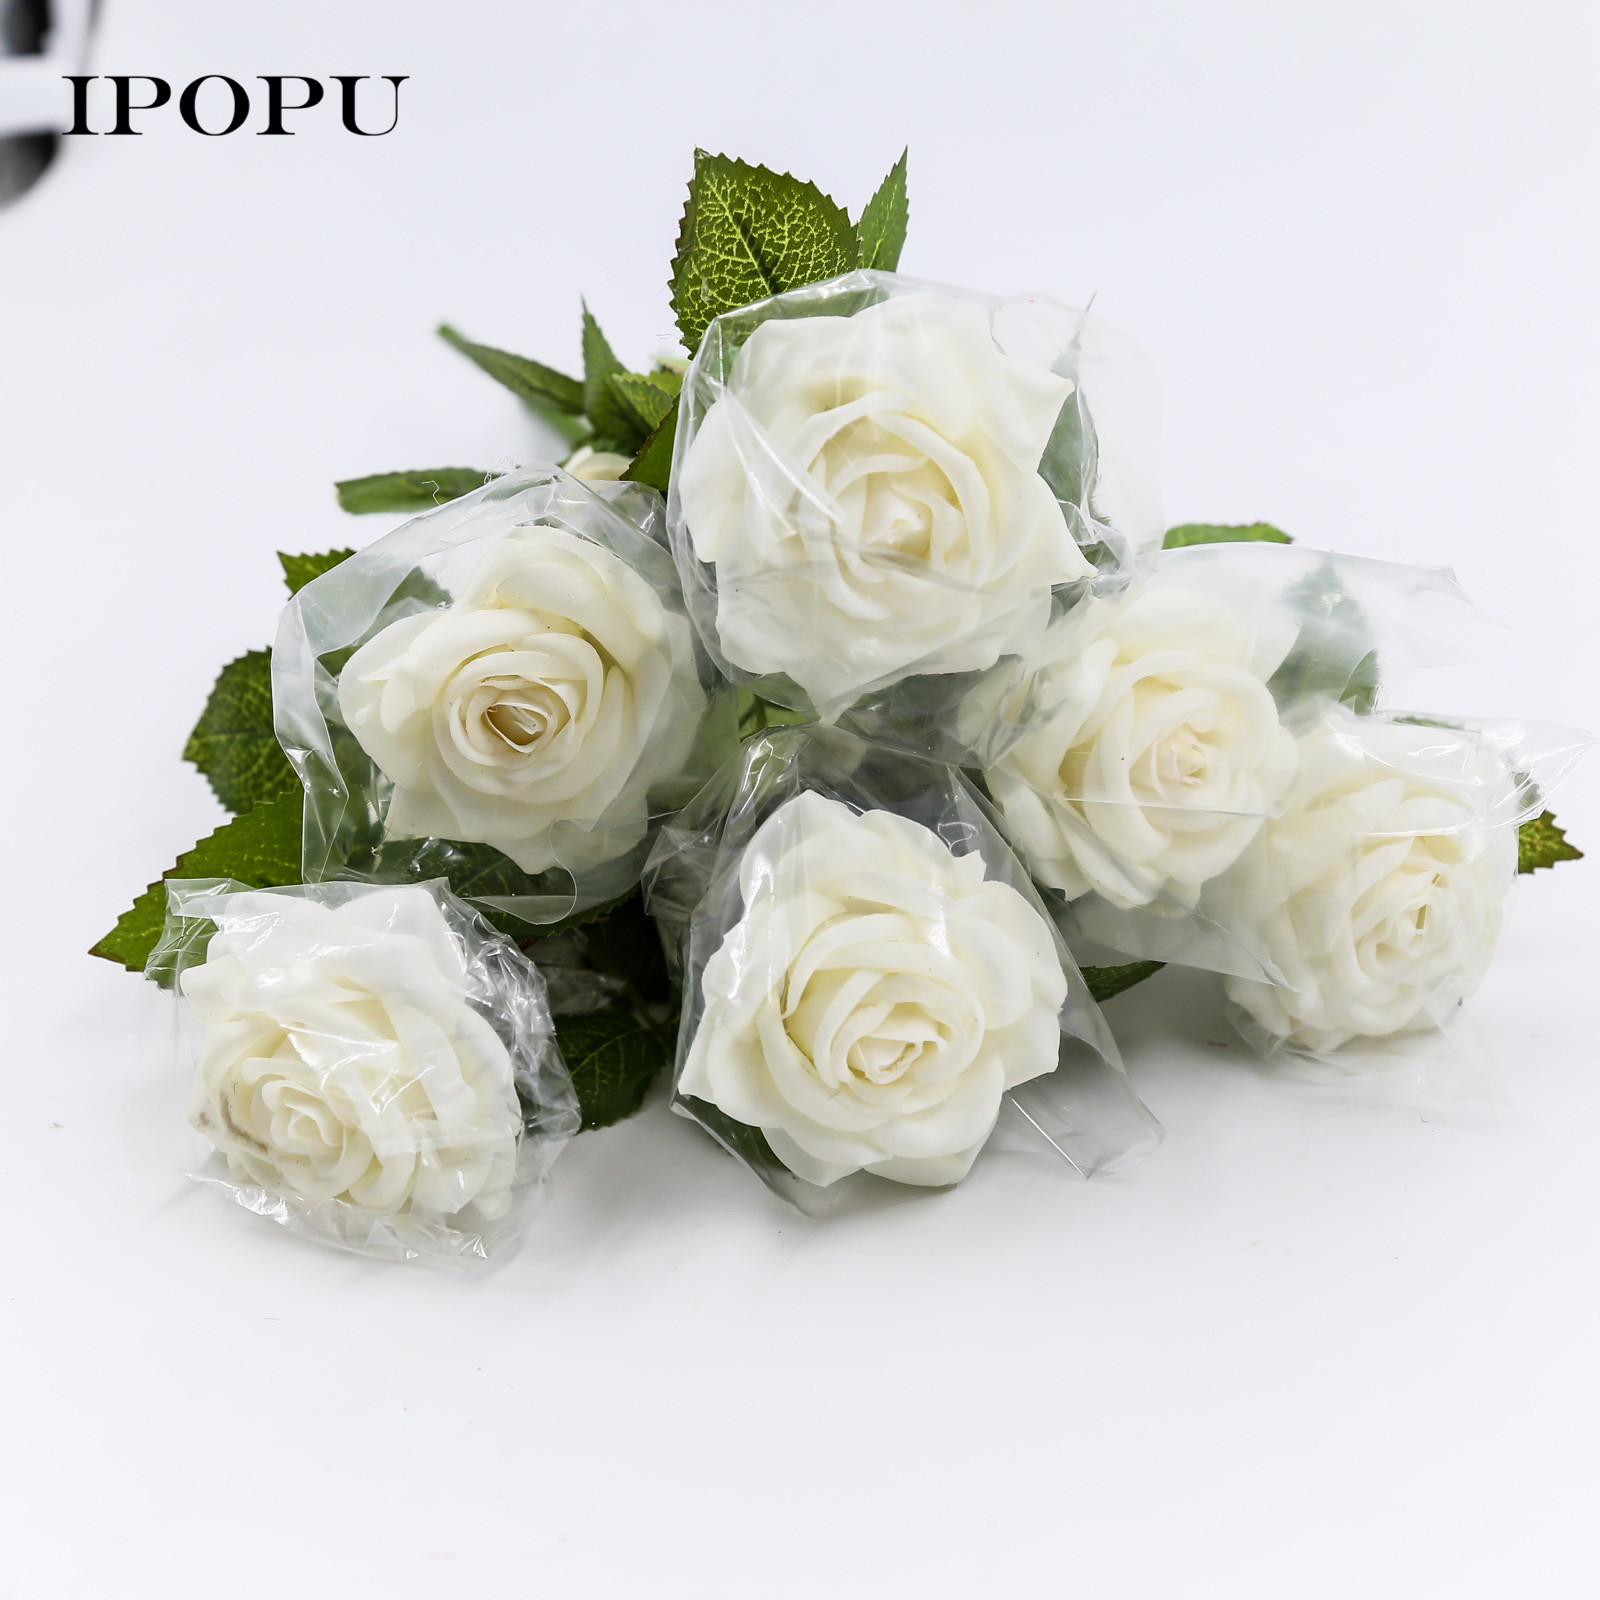 10PCS Artificial Silk Rose Flowers Hands Holding For Wedding Bridal Bridesmaid Flowers Bouquet party Anniversary Decoration